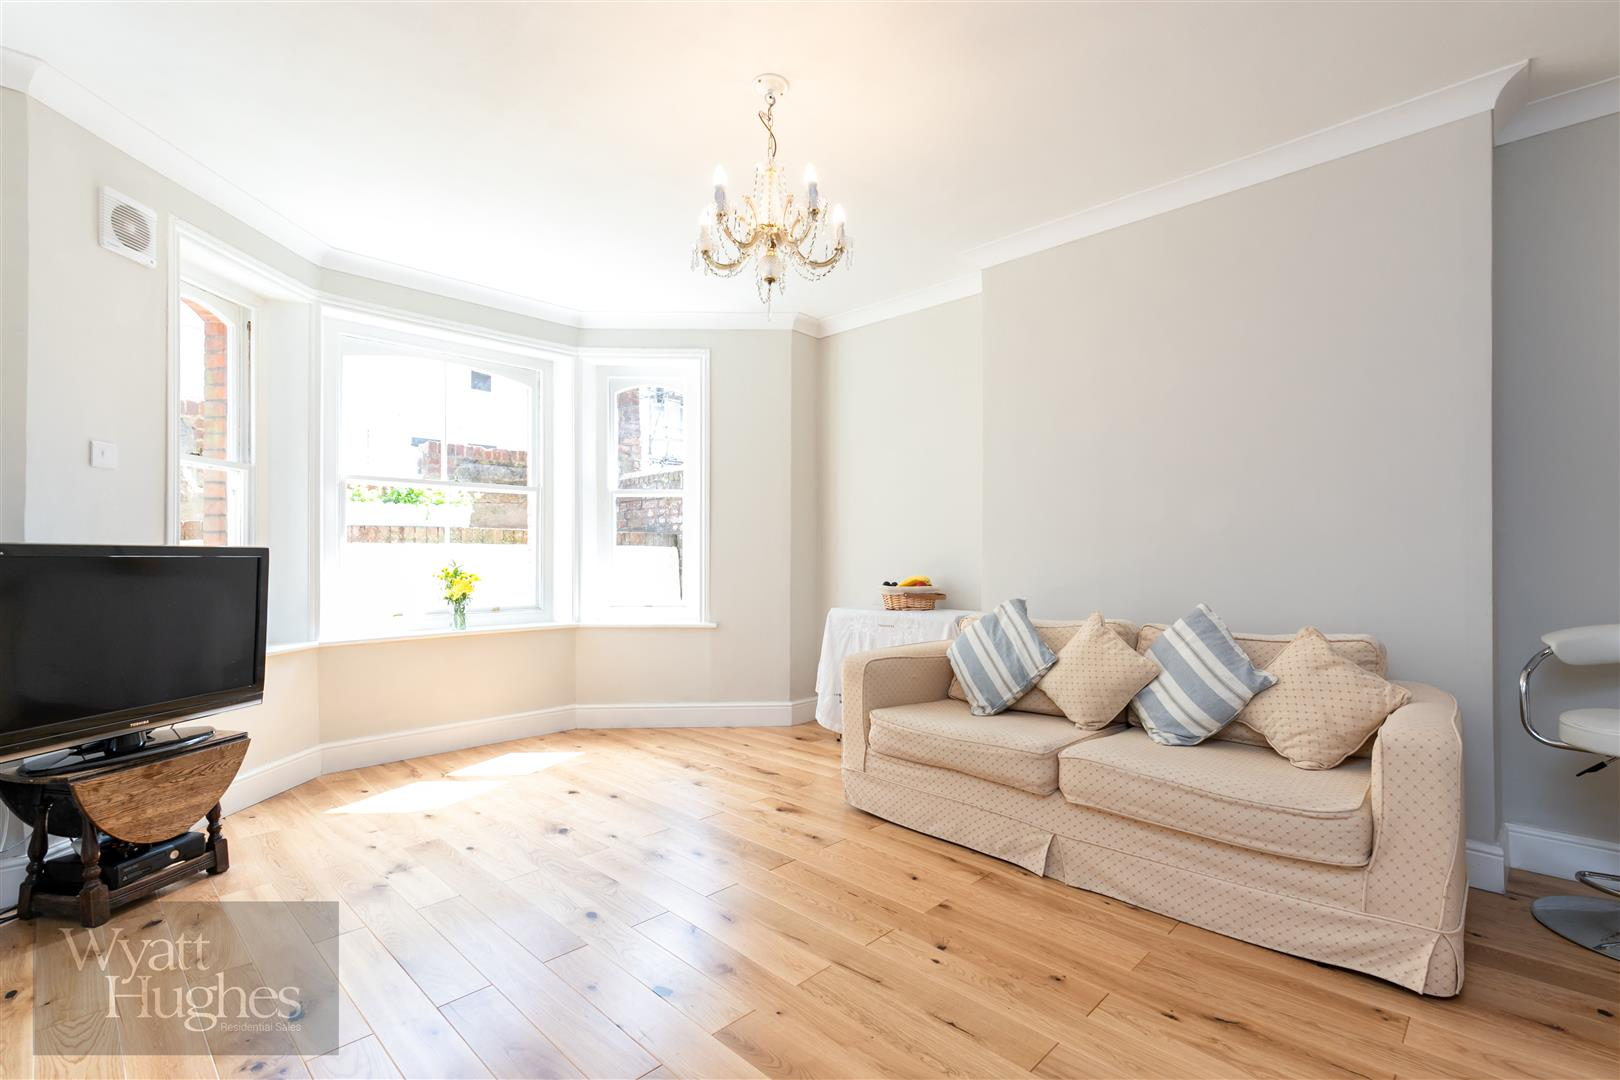 2 bed flat for sale in Kenilworth Road, St. Leonards-On-Sea - Property Image 1